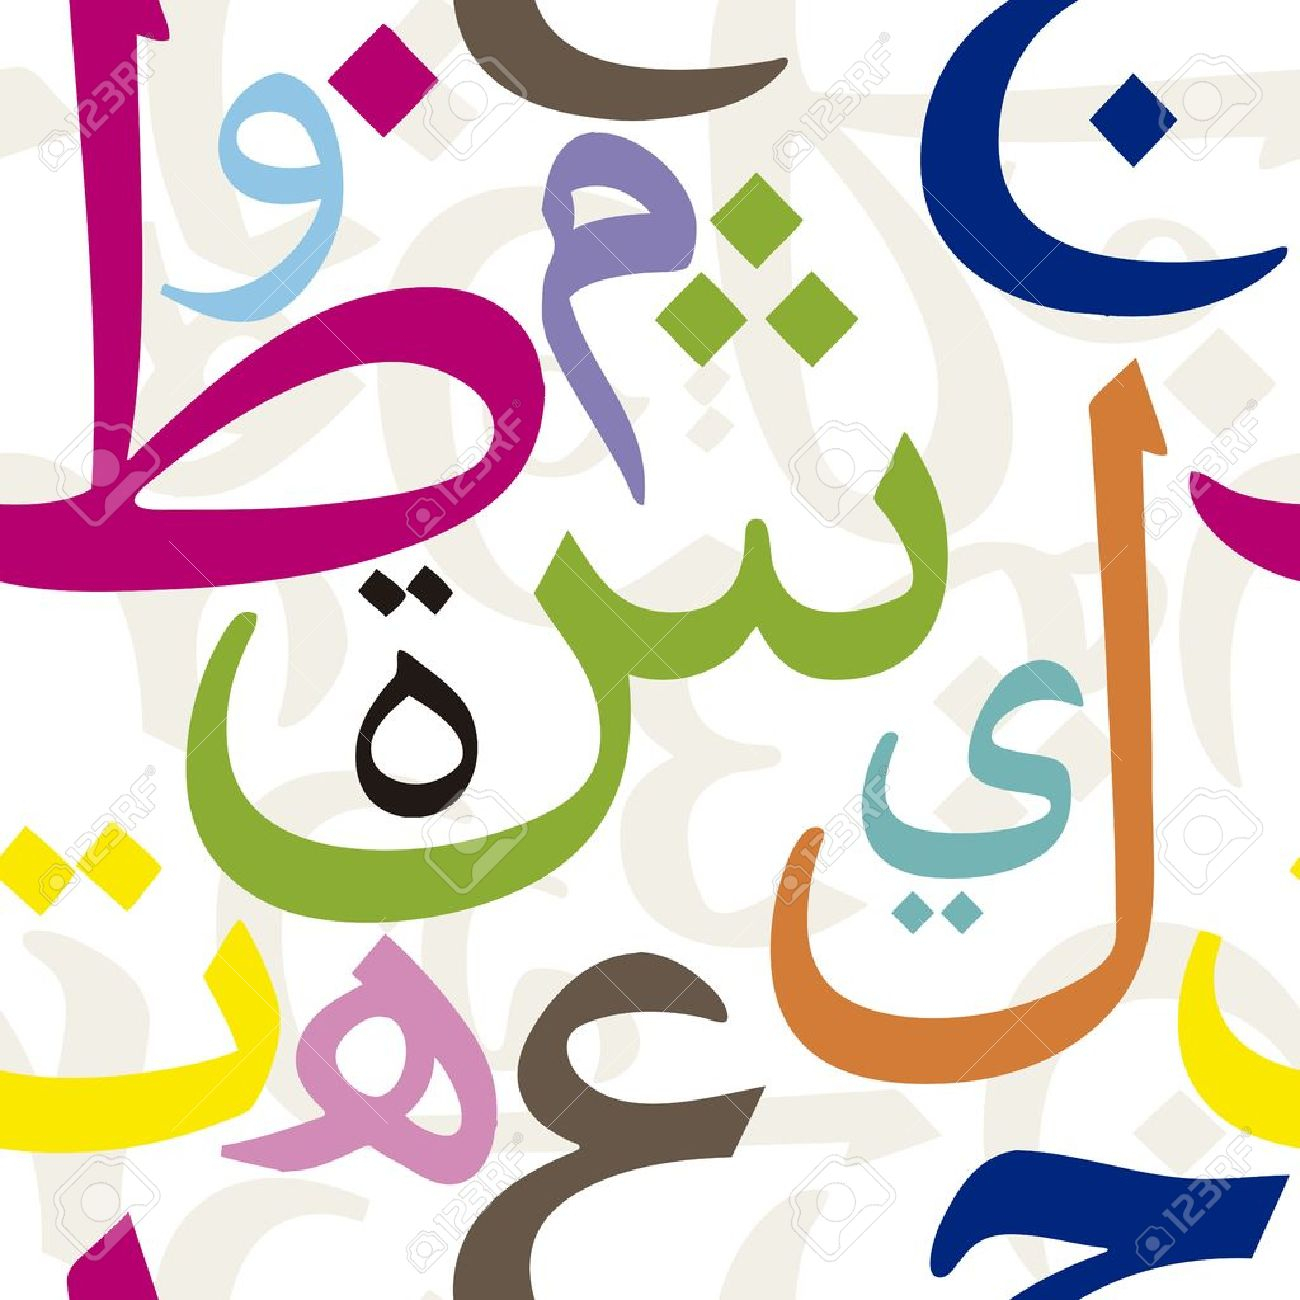 Arabic Consonants Letters. Table 5 Arabic Letter Frequency with Arabic Alphabet Poster Printable